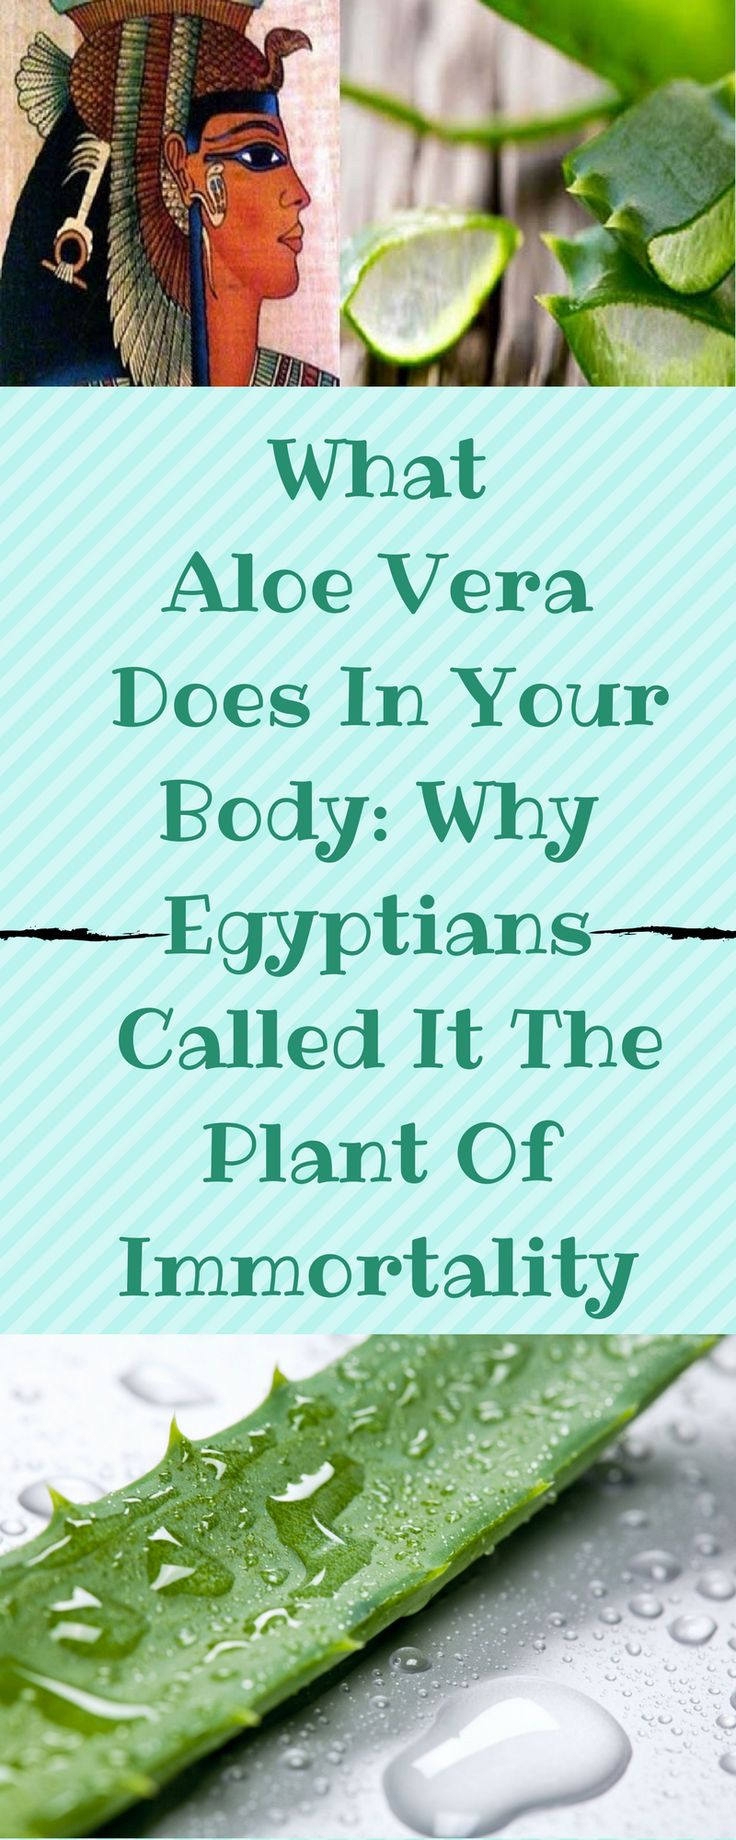 WHAT ALOE VERA DOES IN YOUR BODY: WHY EGYPTIANS CALLED IT THE PLANT OF IMMORTALITY